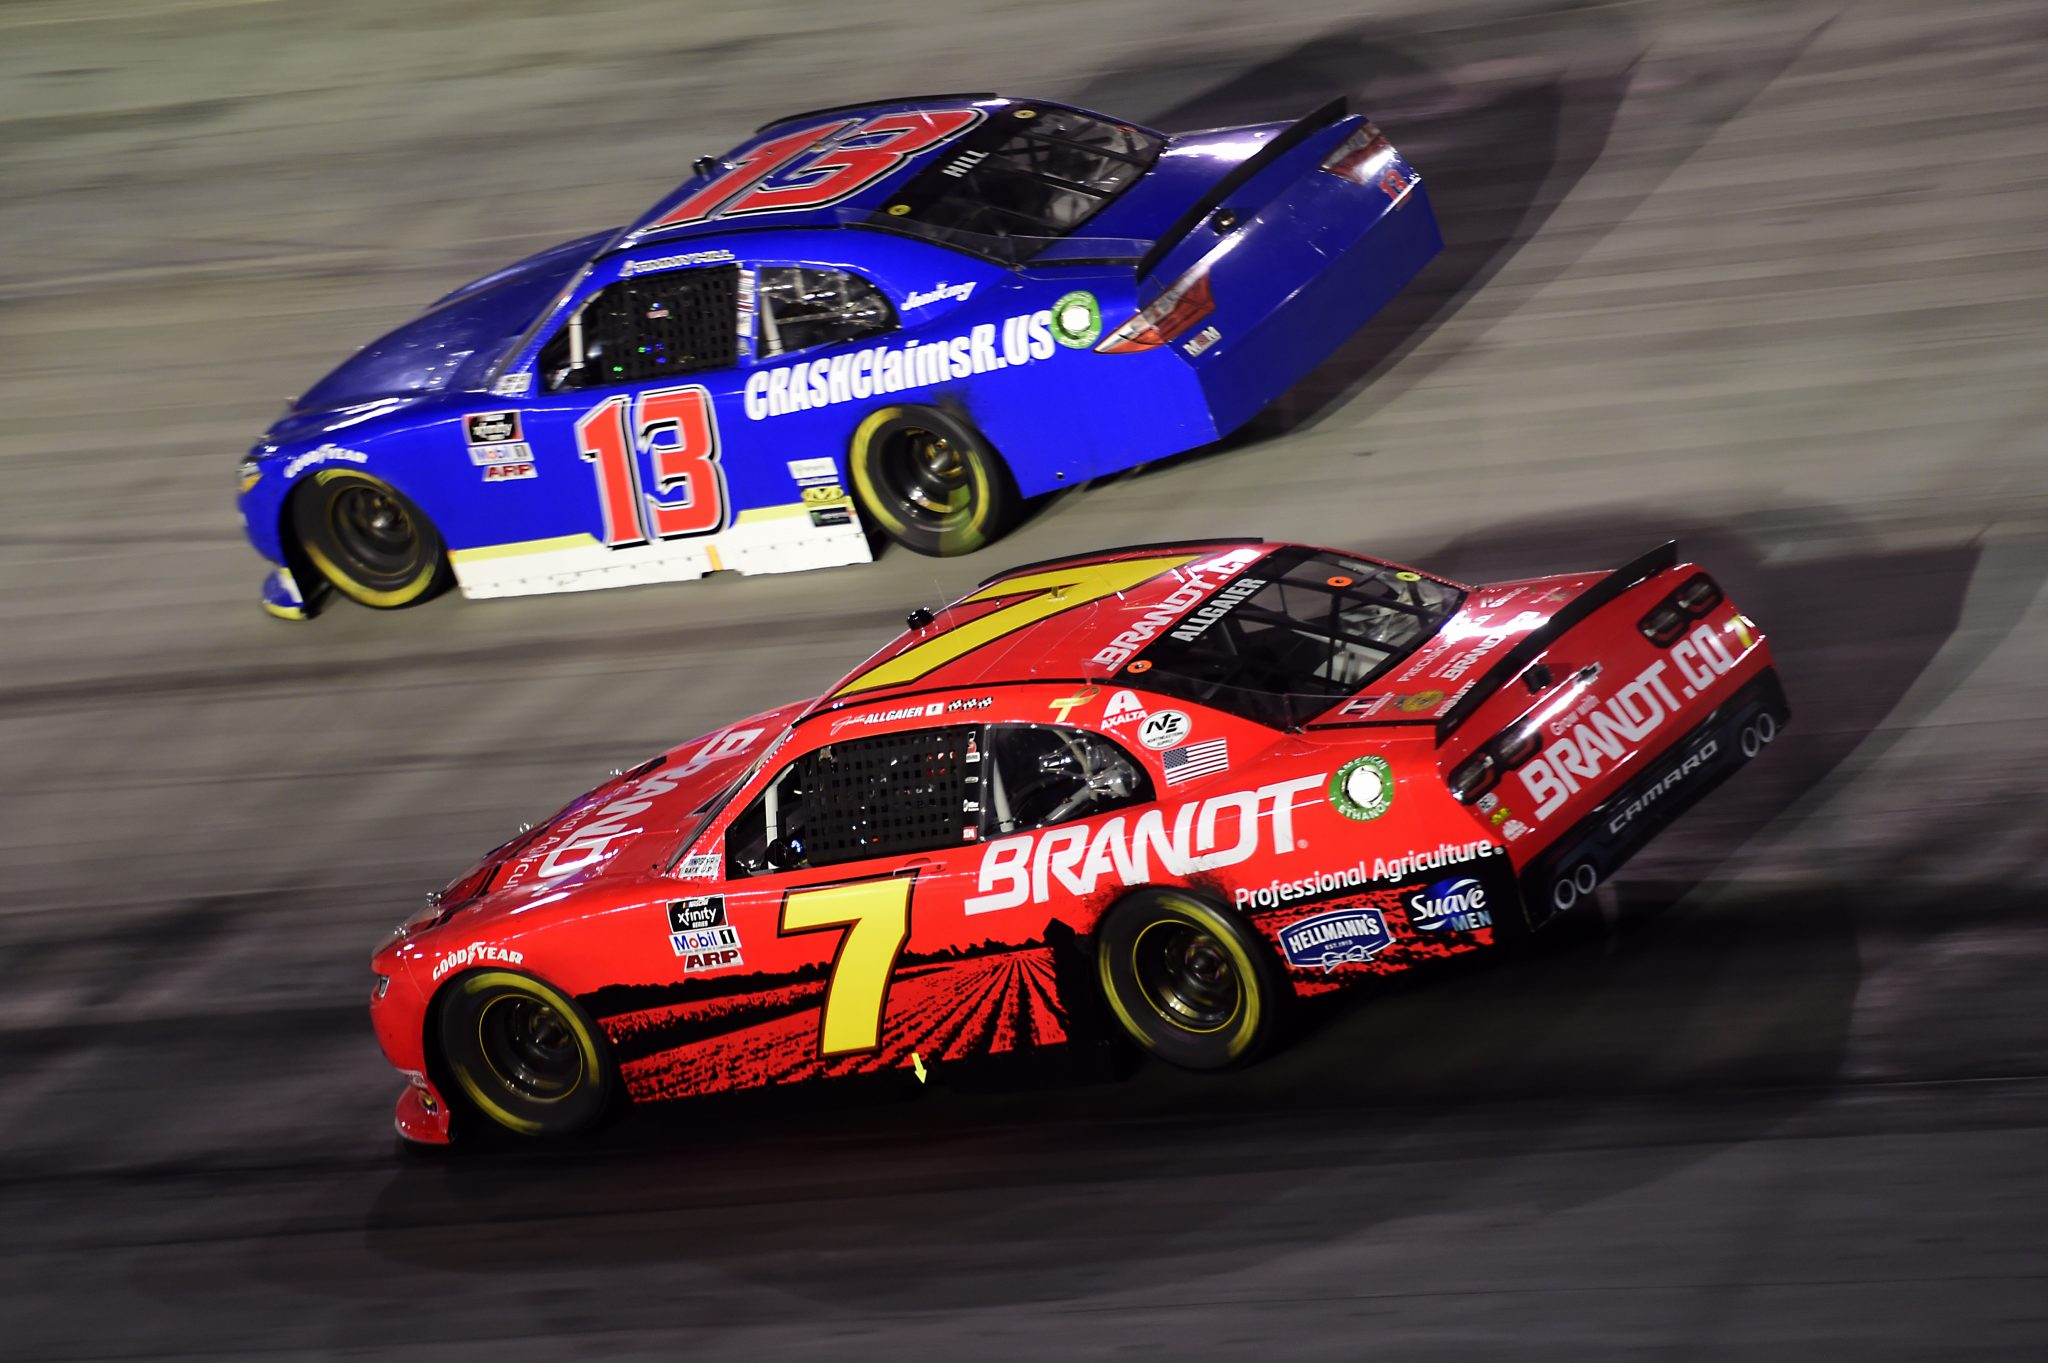 BRISTOL, TENNESSEE - SEPTEMBER 18: Justin Allgaier, driver of the #7 BRANDT Chevrolet, and Timmy Hill, driver of the #13 Toyota, race during the NASCAR Xfinity Series Food City 300 at Bristol Motor Speedway on September 18, 2020 in Bristol, Tennessee. (Photo by Jared C. Tilton/Getty Images) | Getty Images